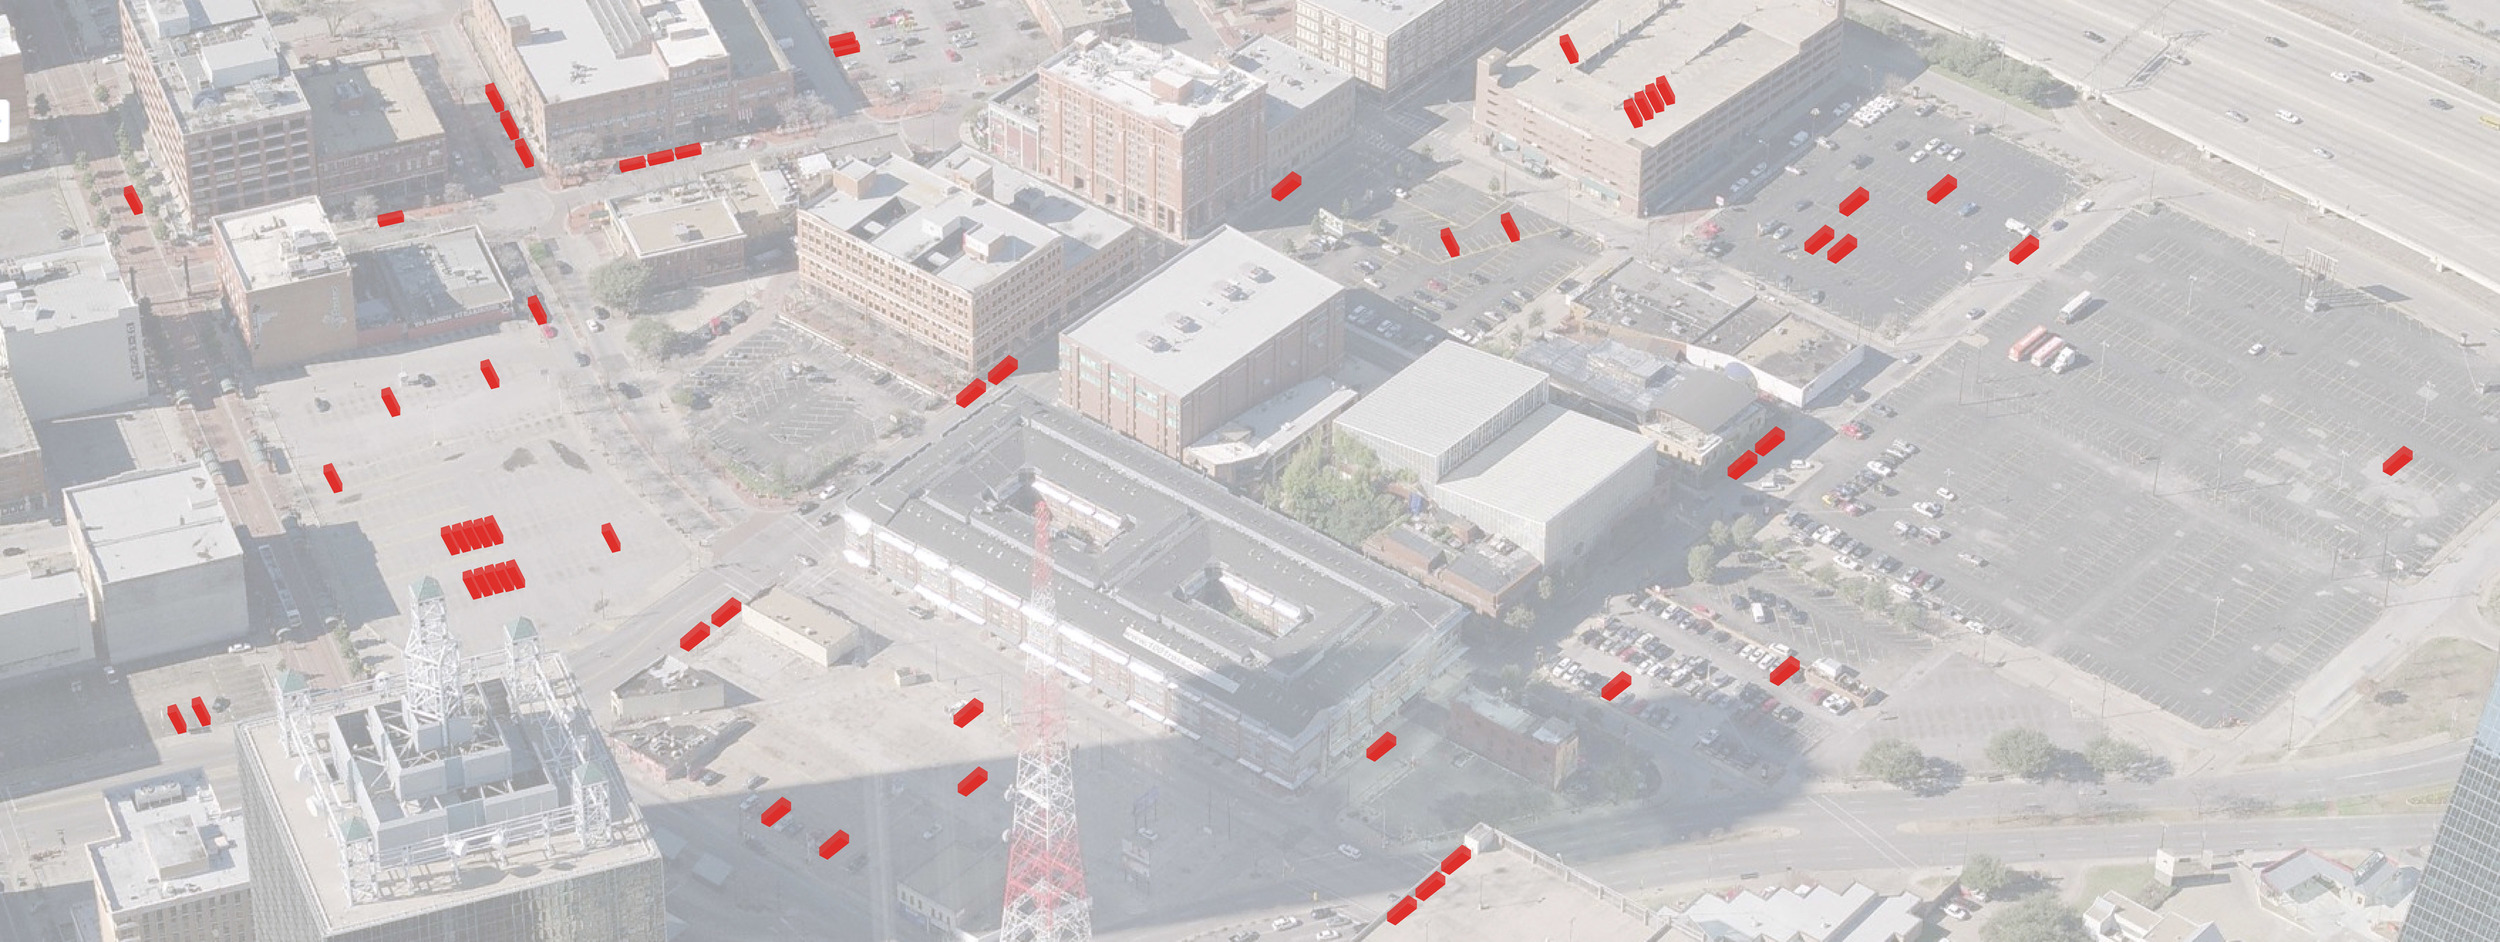 There is an opportunity to improve this underutilized urban space.